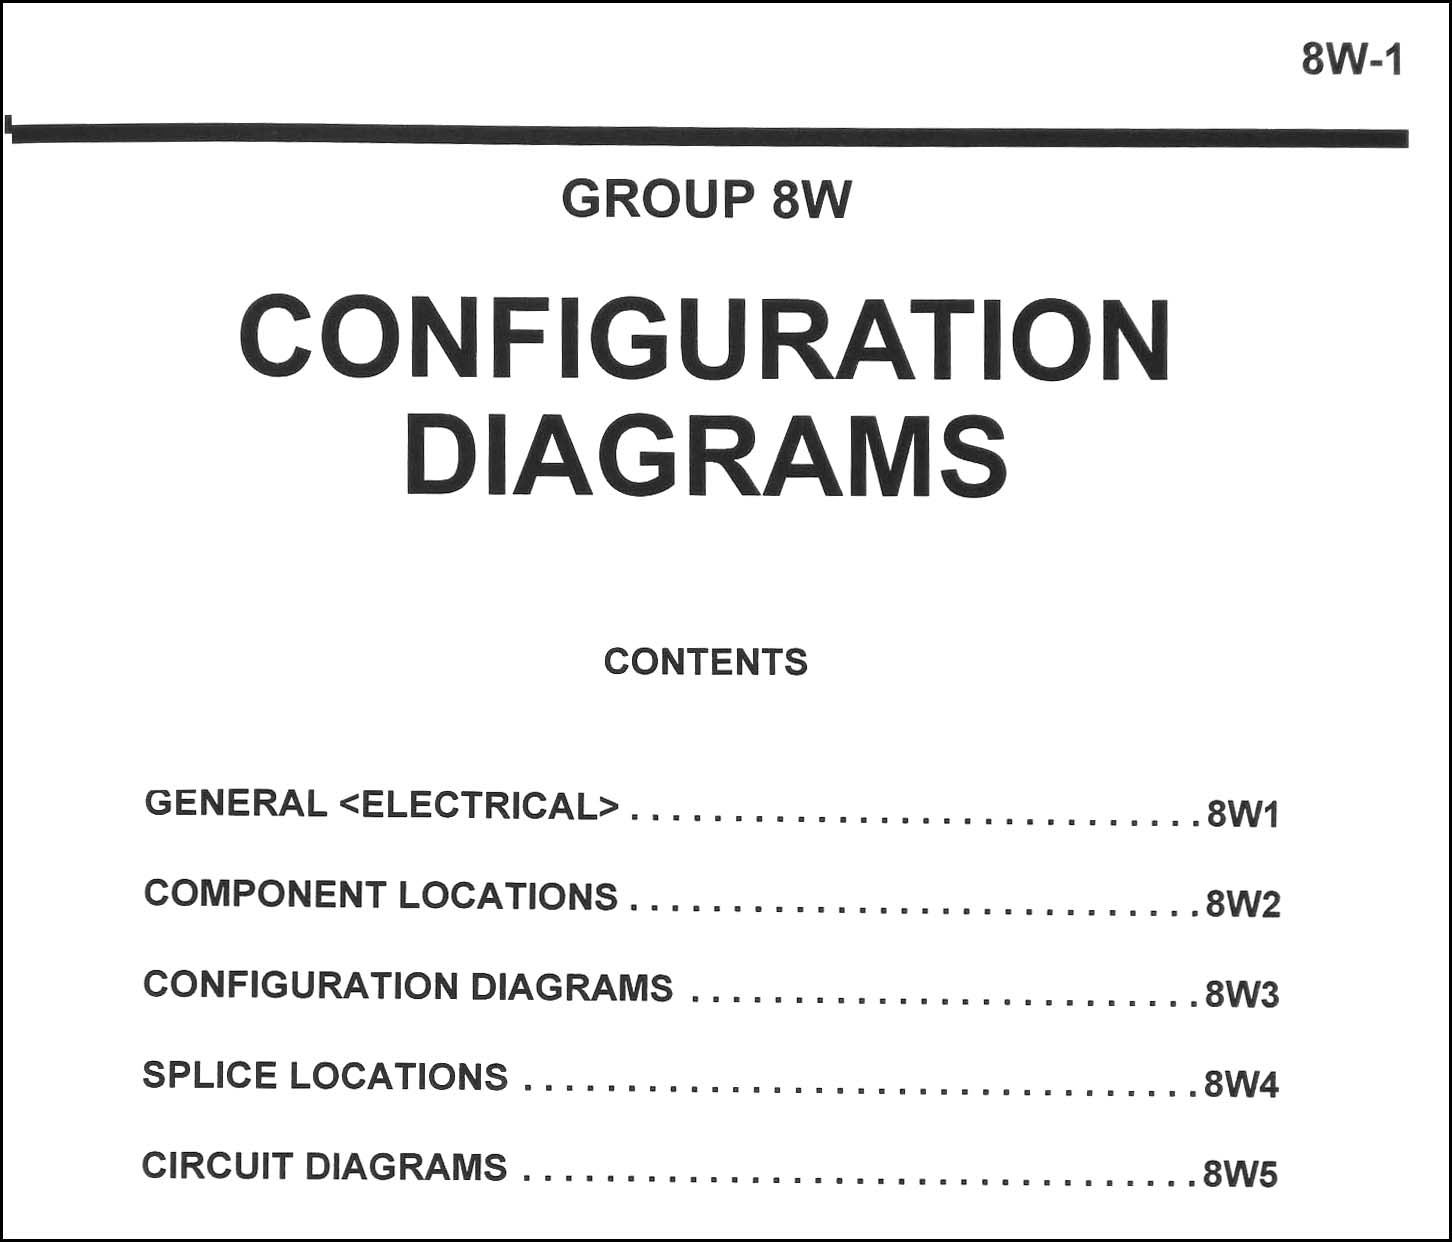 2005 Chrysler Sebring Dodge Stratus Coupe Wiring Diagram Manual Original ·  Table of Contents Page